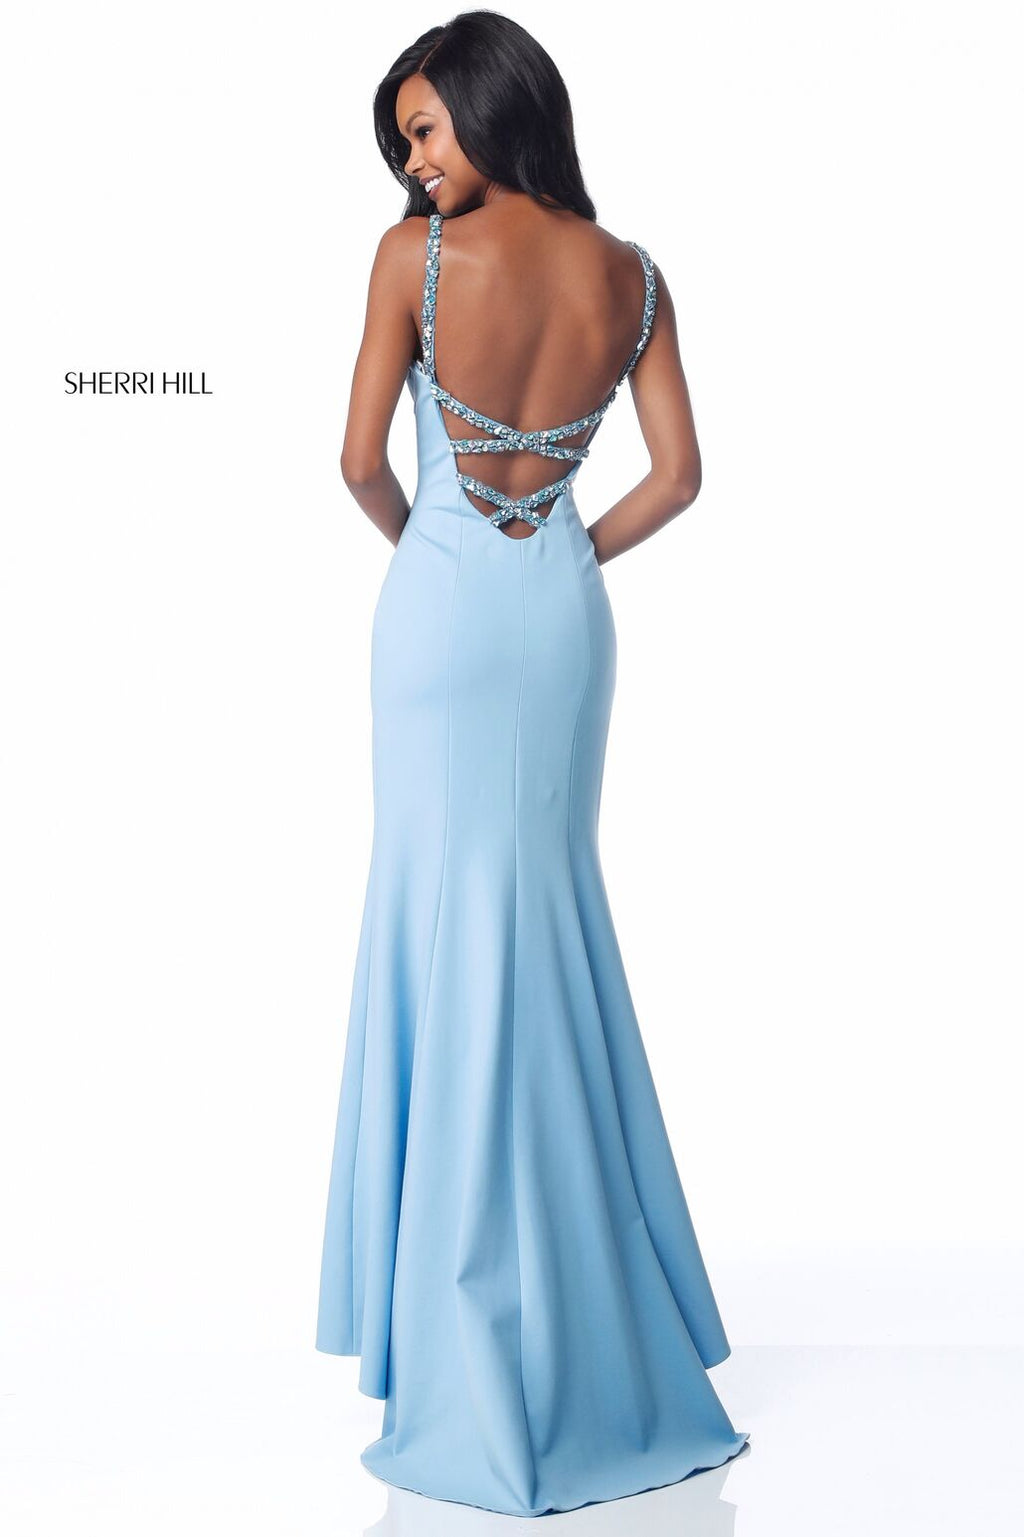 This Sherri Hill 51777 fitted jersey gown in light blue features bead encrusted straps and an open back.